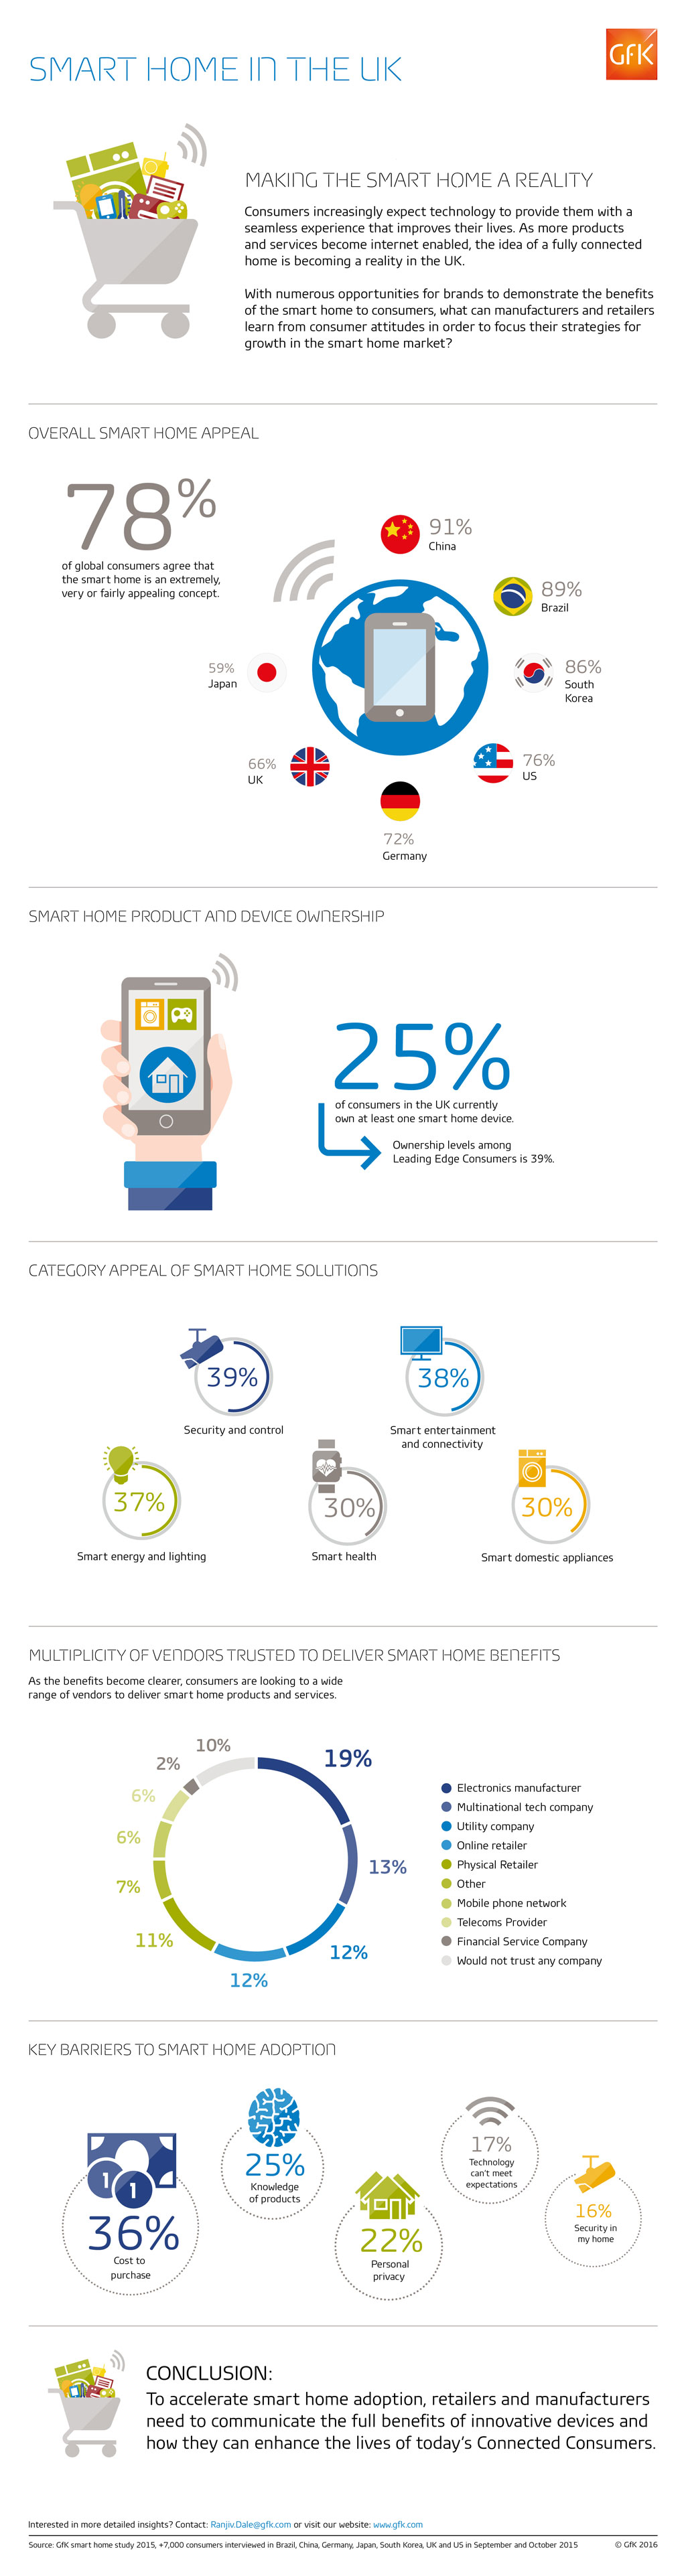 Smart_home_infographic_1120